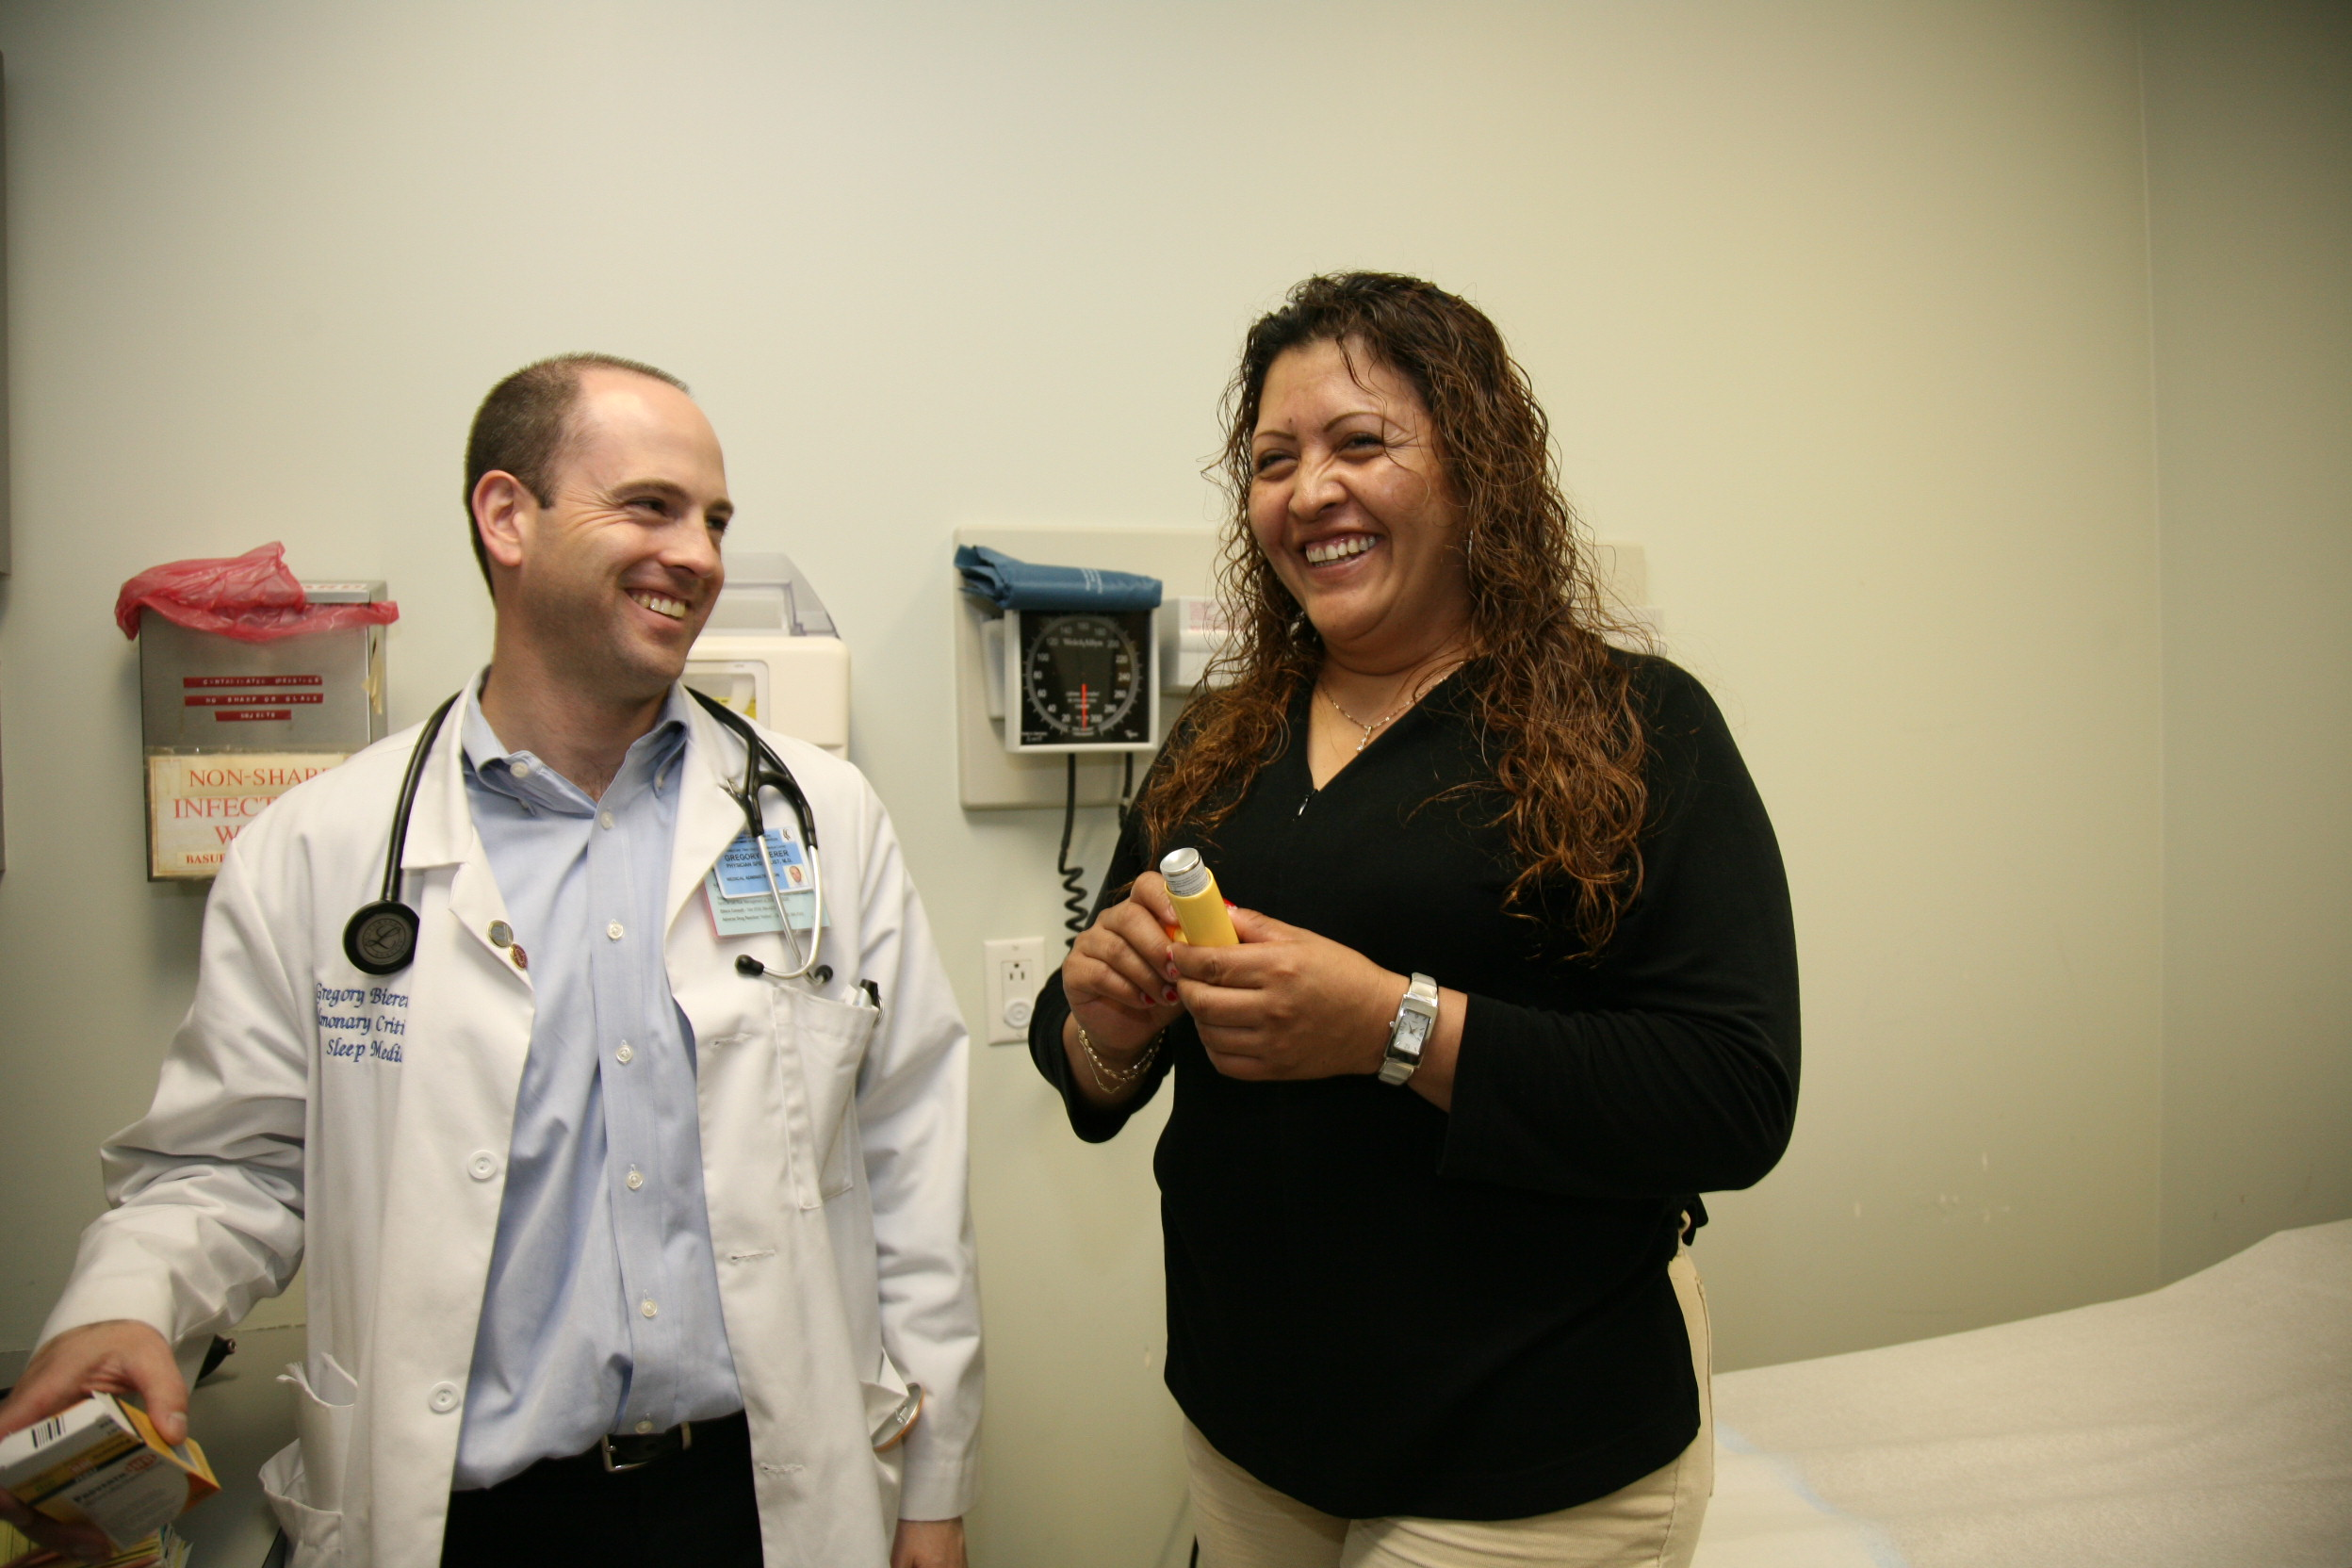 Doctor and Patient at Oscar Romero Health Center